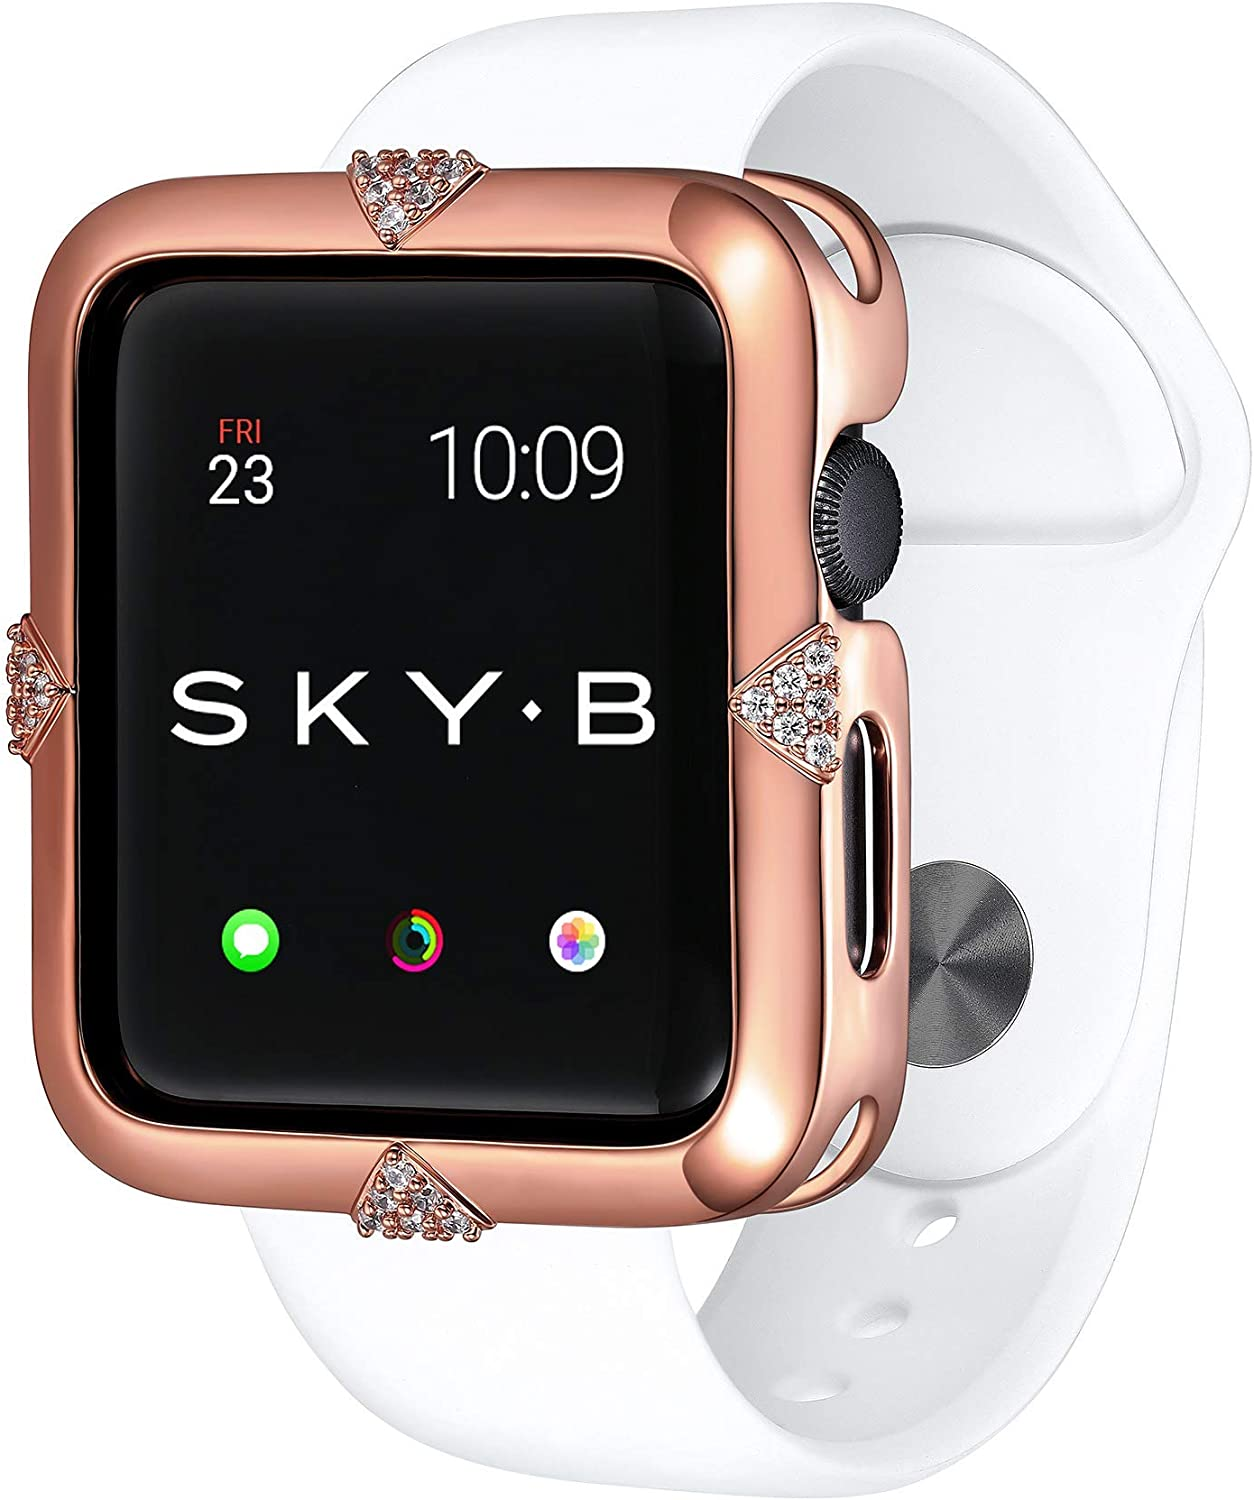 SKYB Pave Points Rose Gold Protective Jewelry Case for Apple Watch Series 1, 2, 3, 4, 5 Devices - 42mm